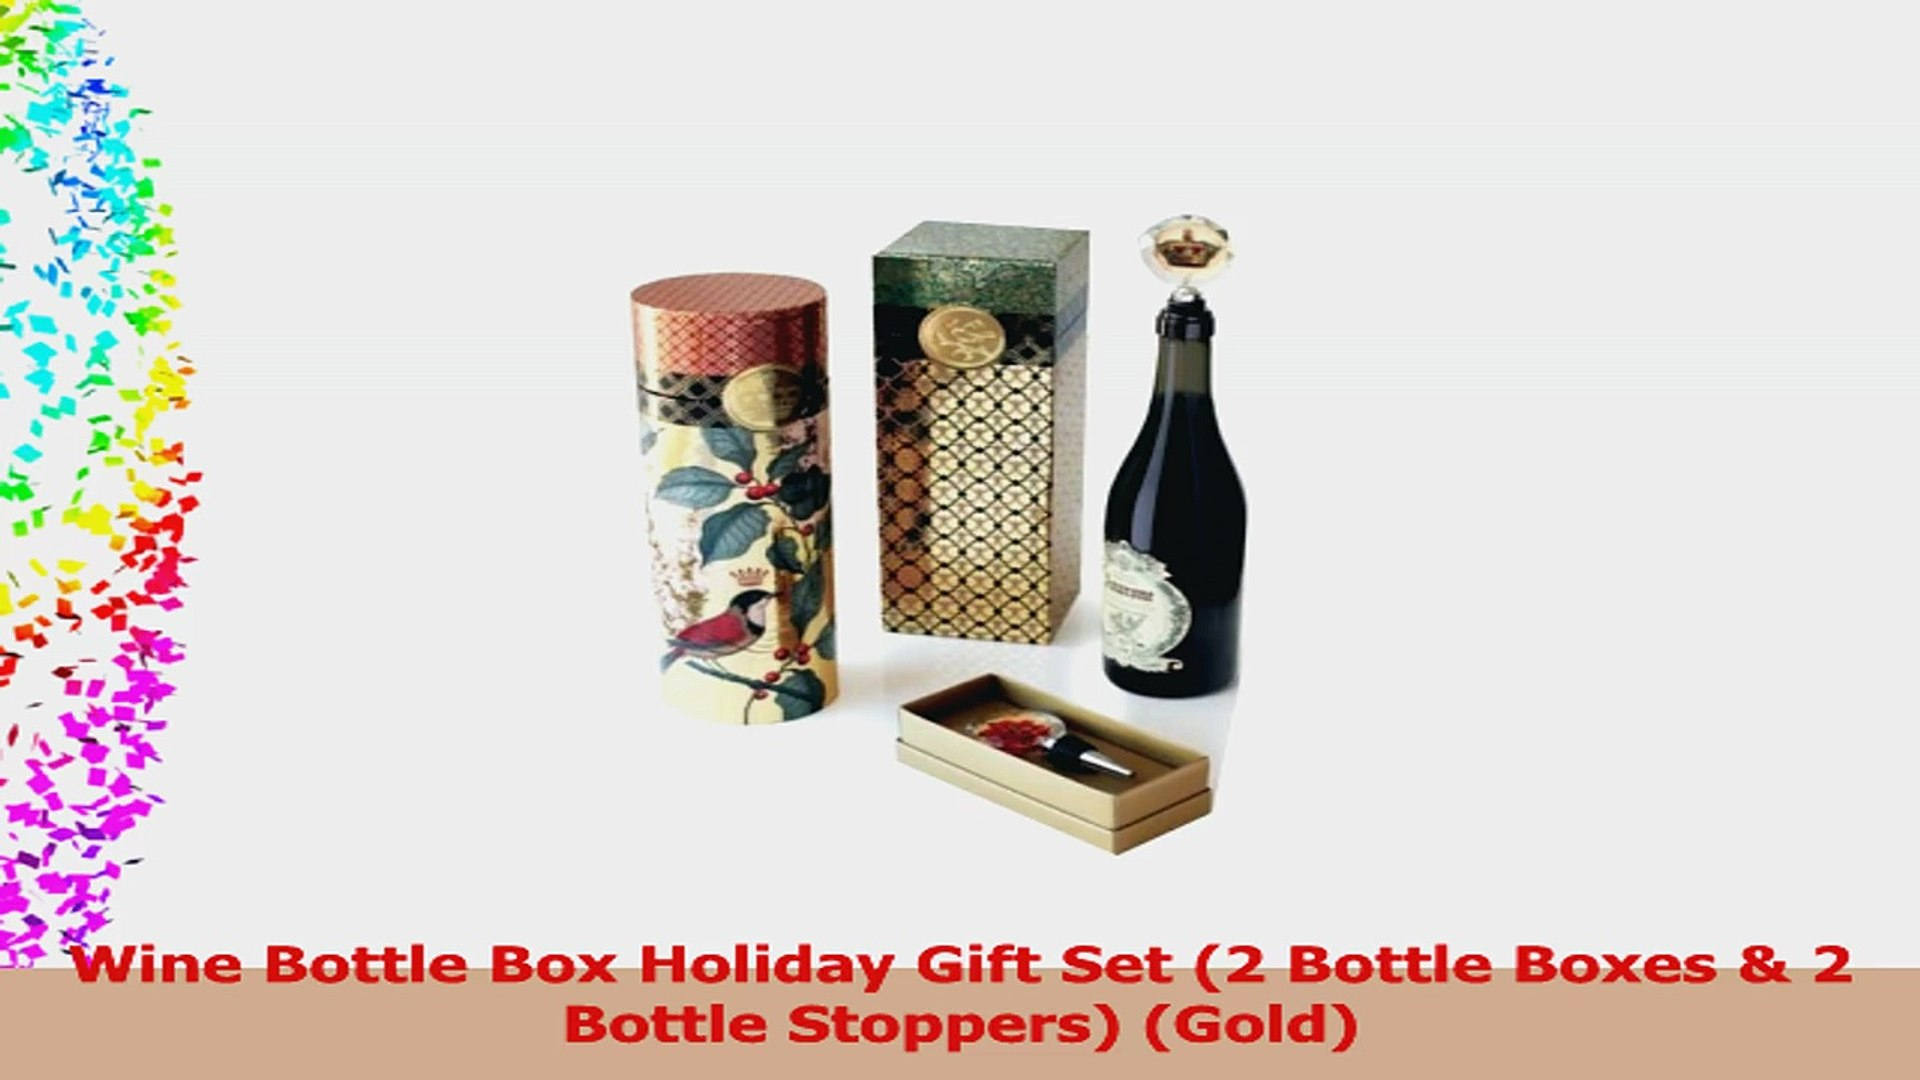 Wine Bottle Box Holiday Gift Set 2 Bottle Boxes  2 Bottle Stoppers Gold 80dad876